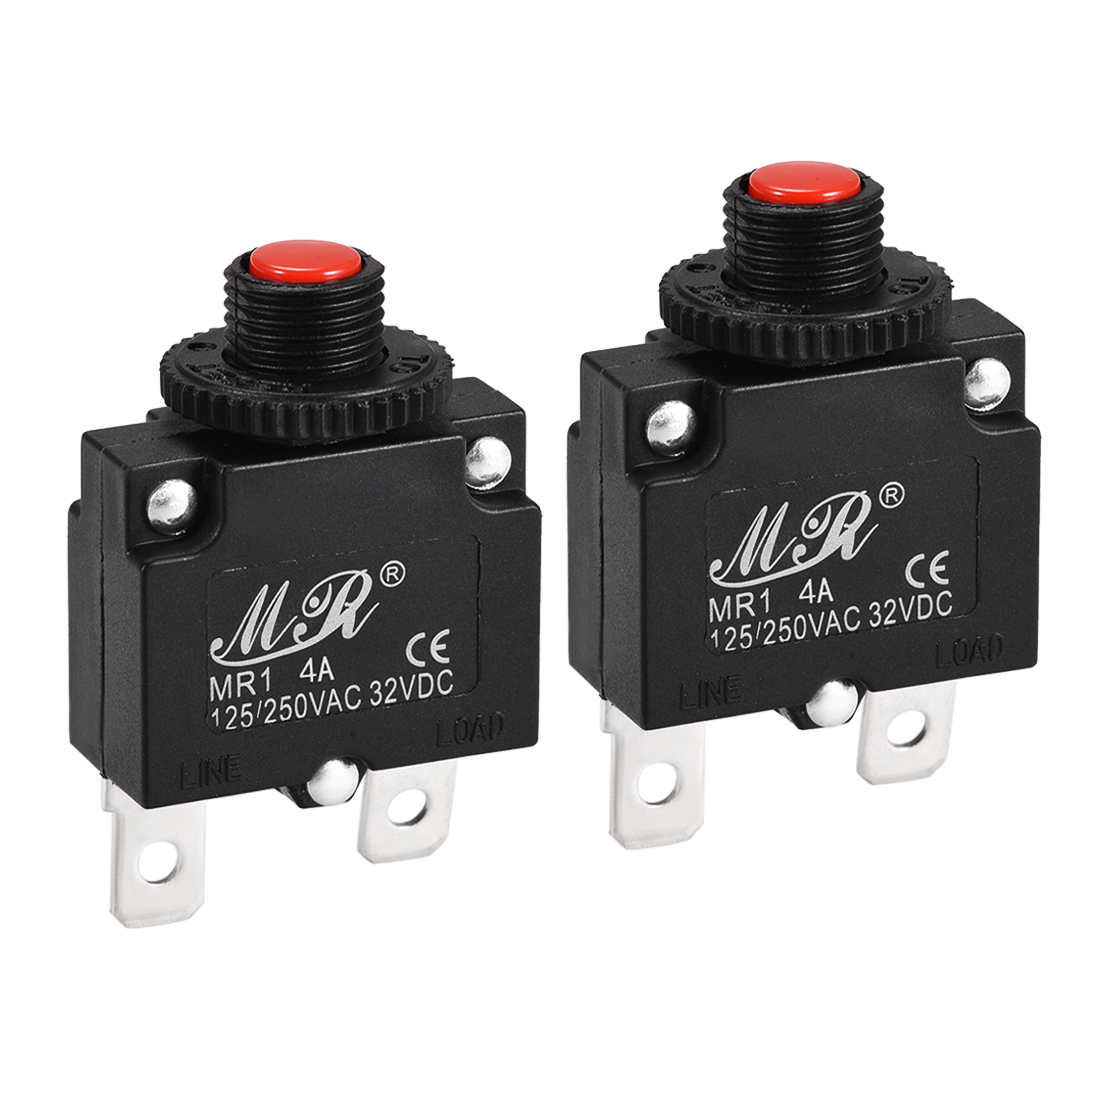 2 Pcs 4A Push Button Manual Reset Overload Protector Thermal Circuit Breakers